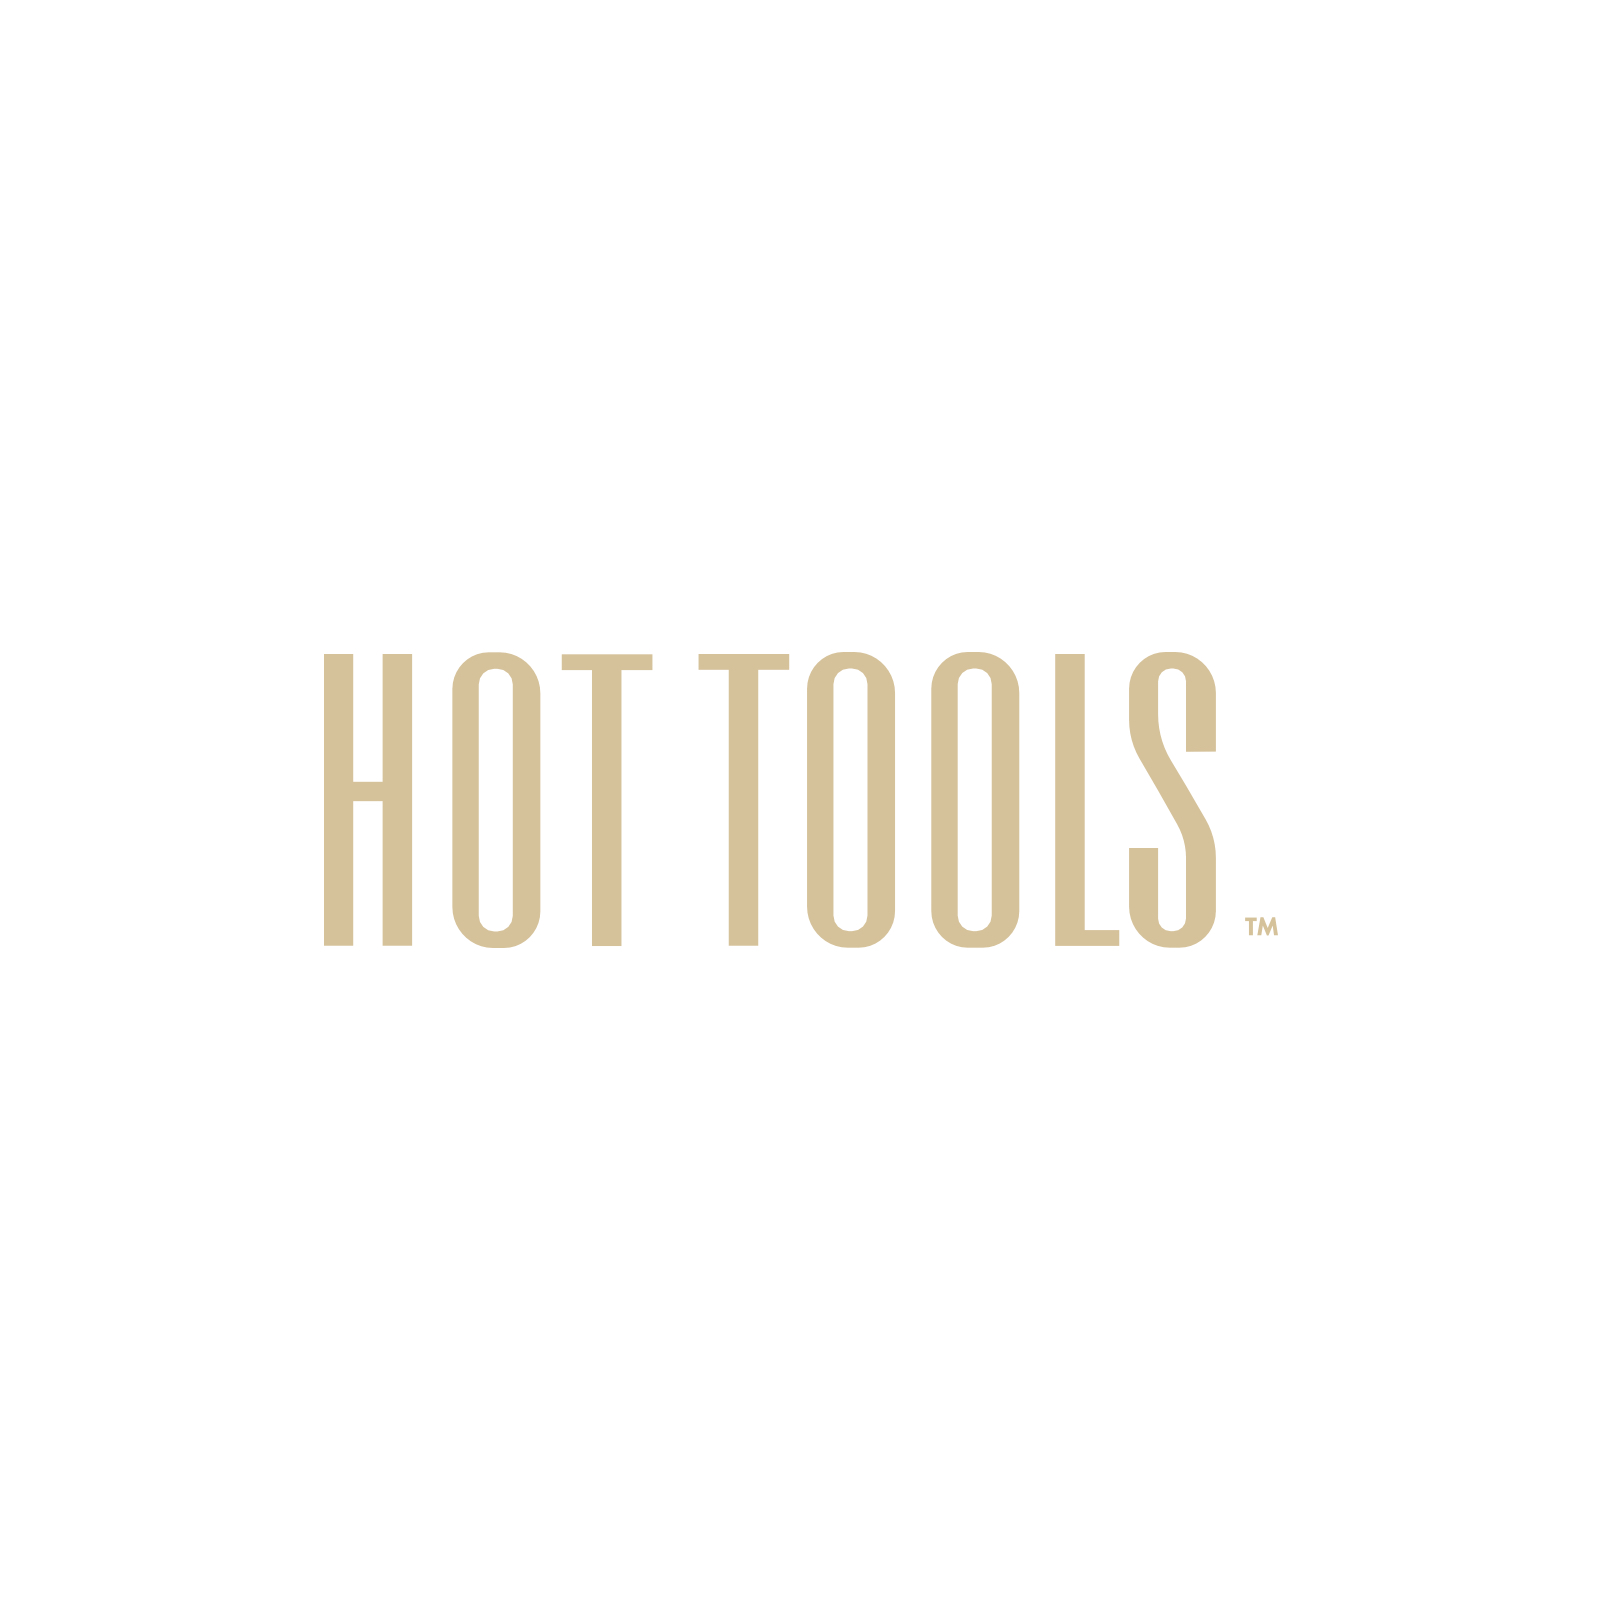 HOT TOOLS Signature Series Gold Flipperless Curling Iron, 1 ¼ Inch product image